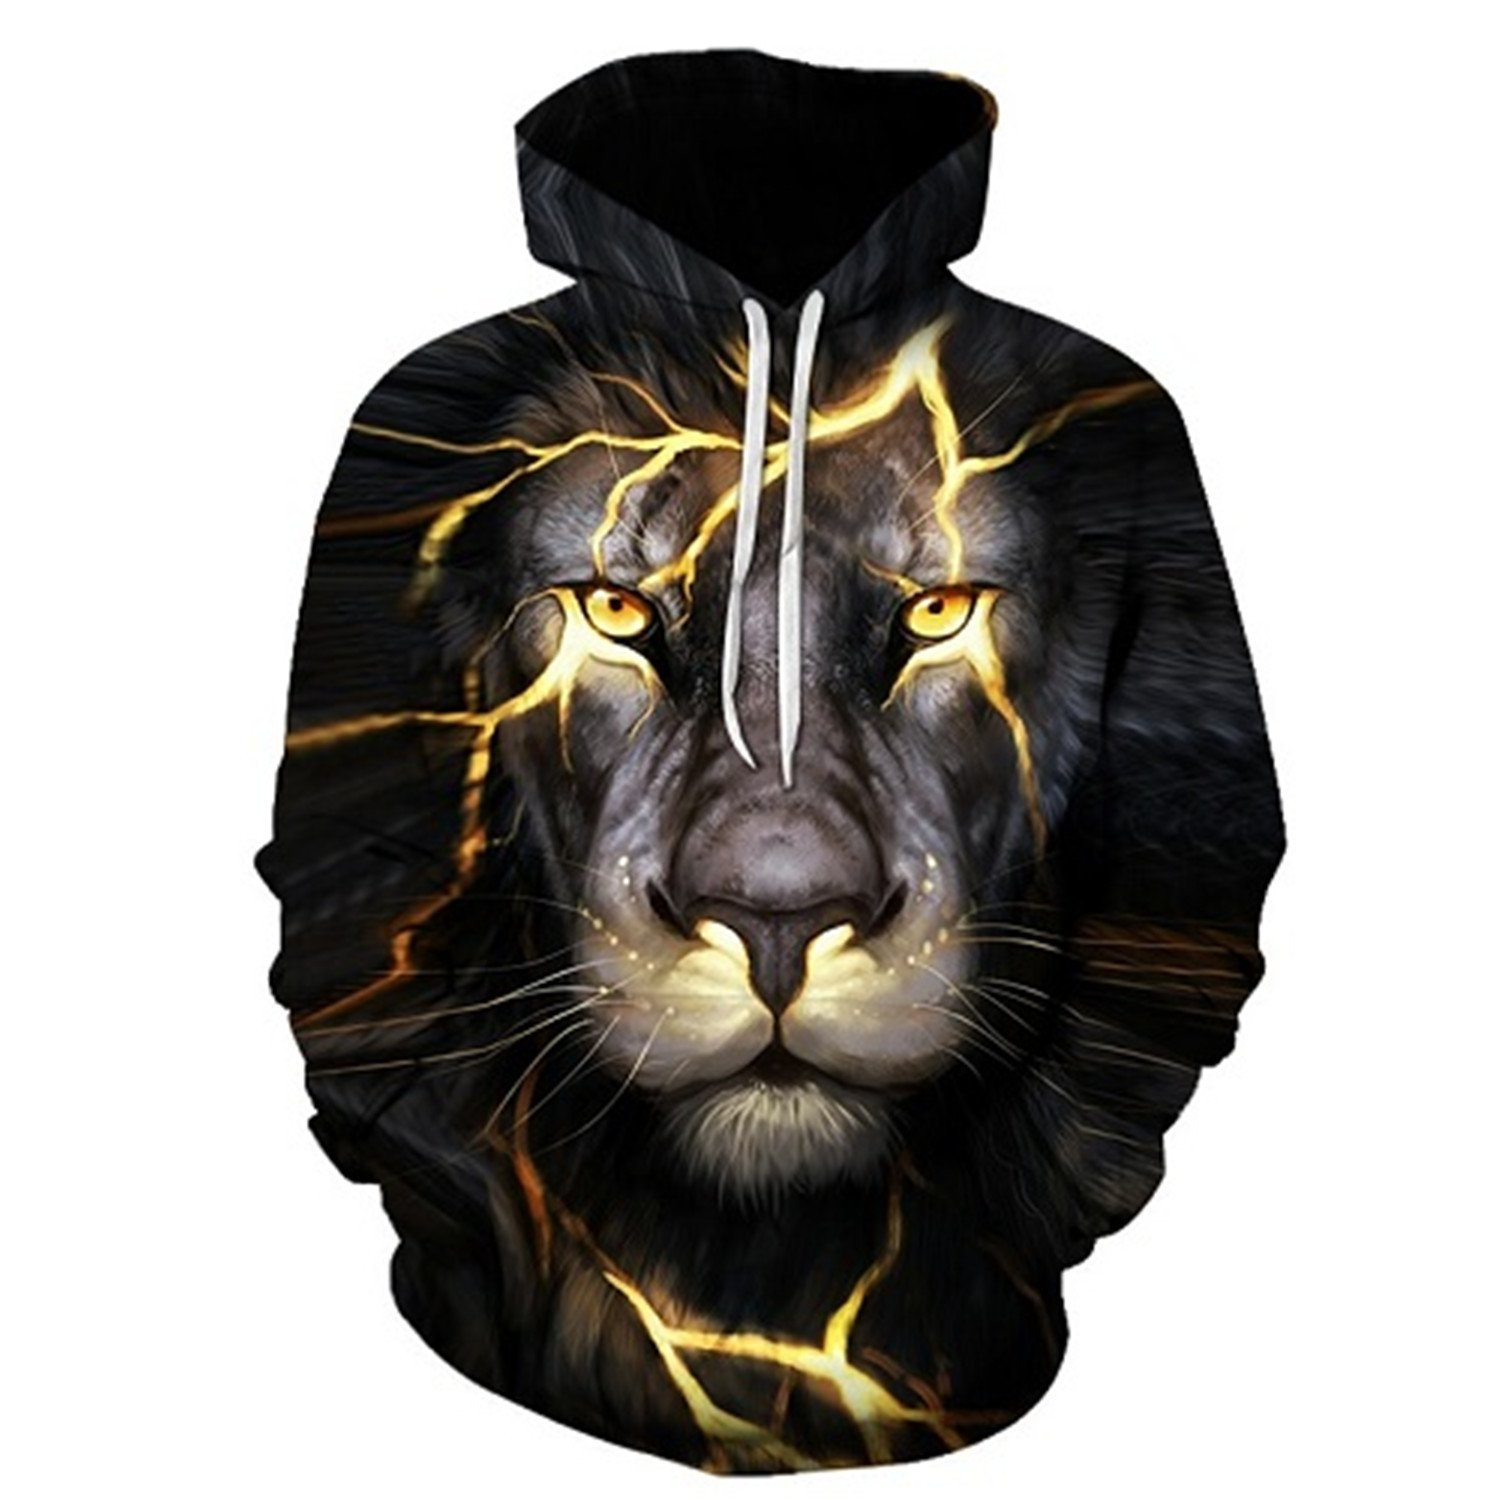 Matterin Christiao New Fashion Men//Women 3D Sweatshirts Print Paisley Lightning Lion Hoodies Thin Hooded Pullovers Tops